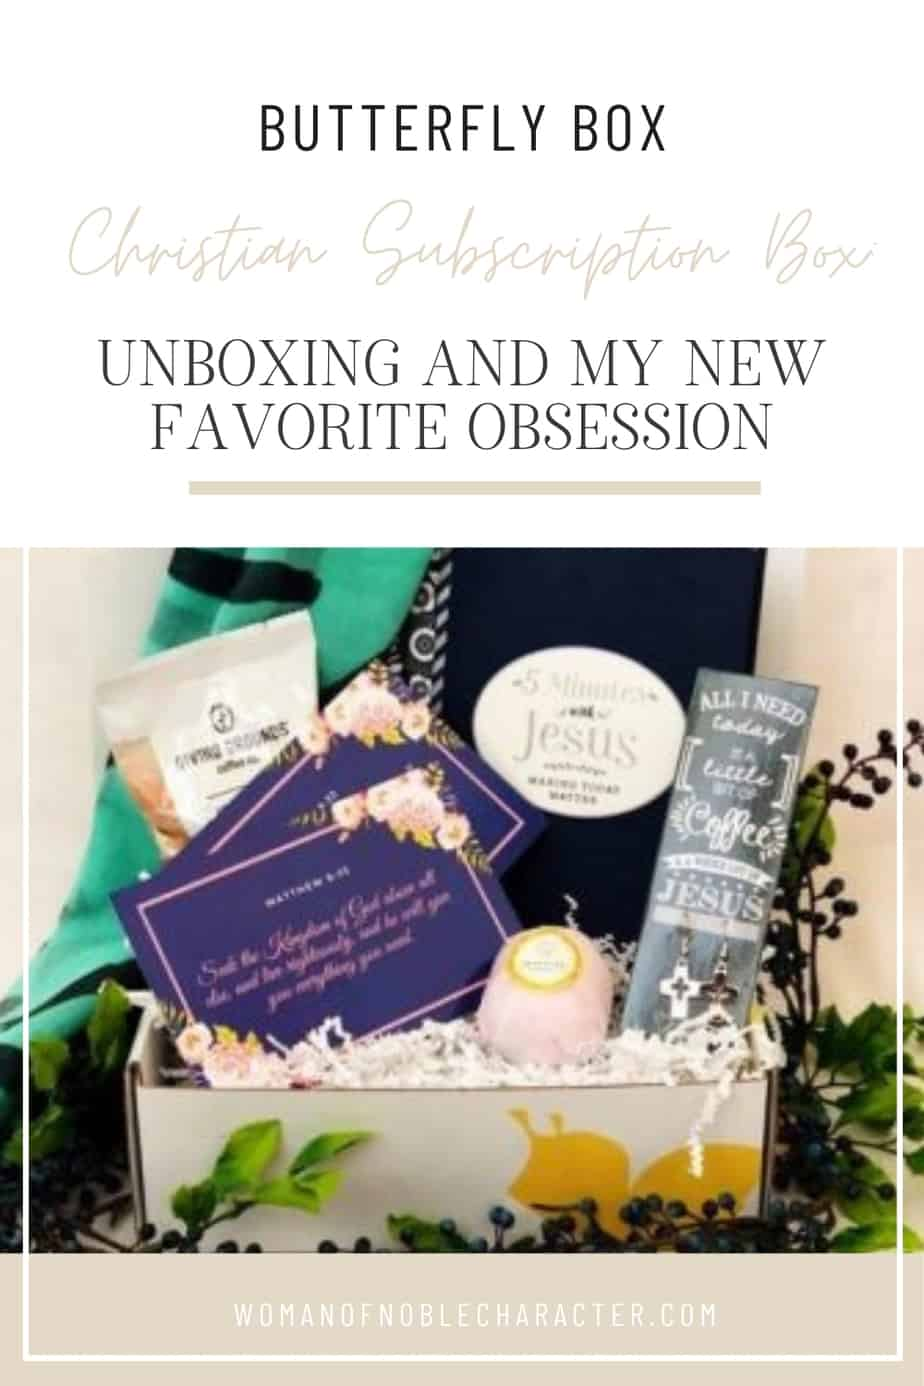 "An image of one of the butterfly box subscription boxes with the title, ""Butterfly Box Christian Subscription Box: Unboxing and my New Favorite Obsession"""